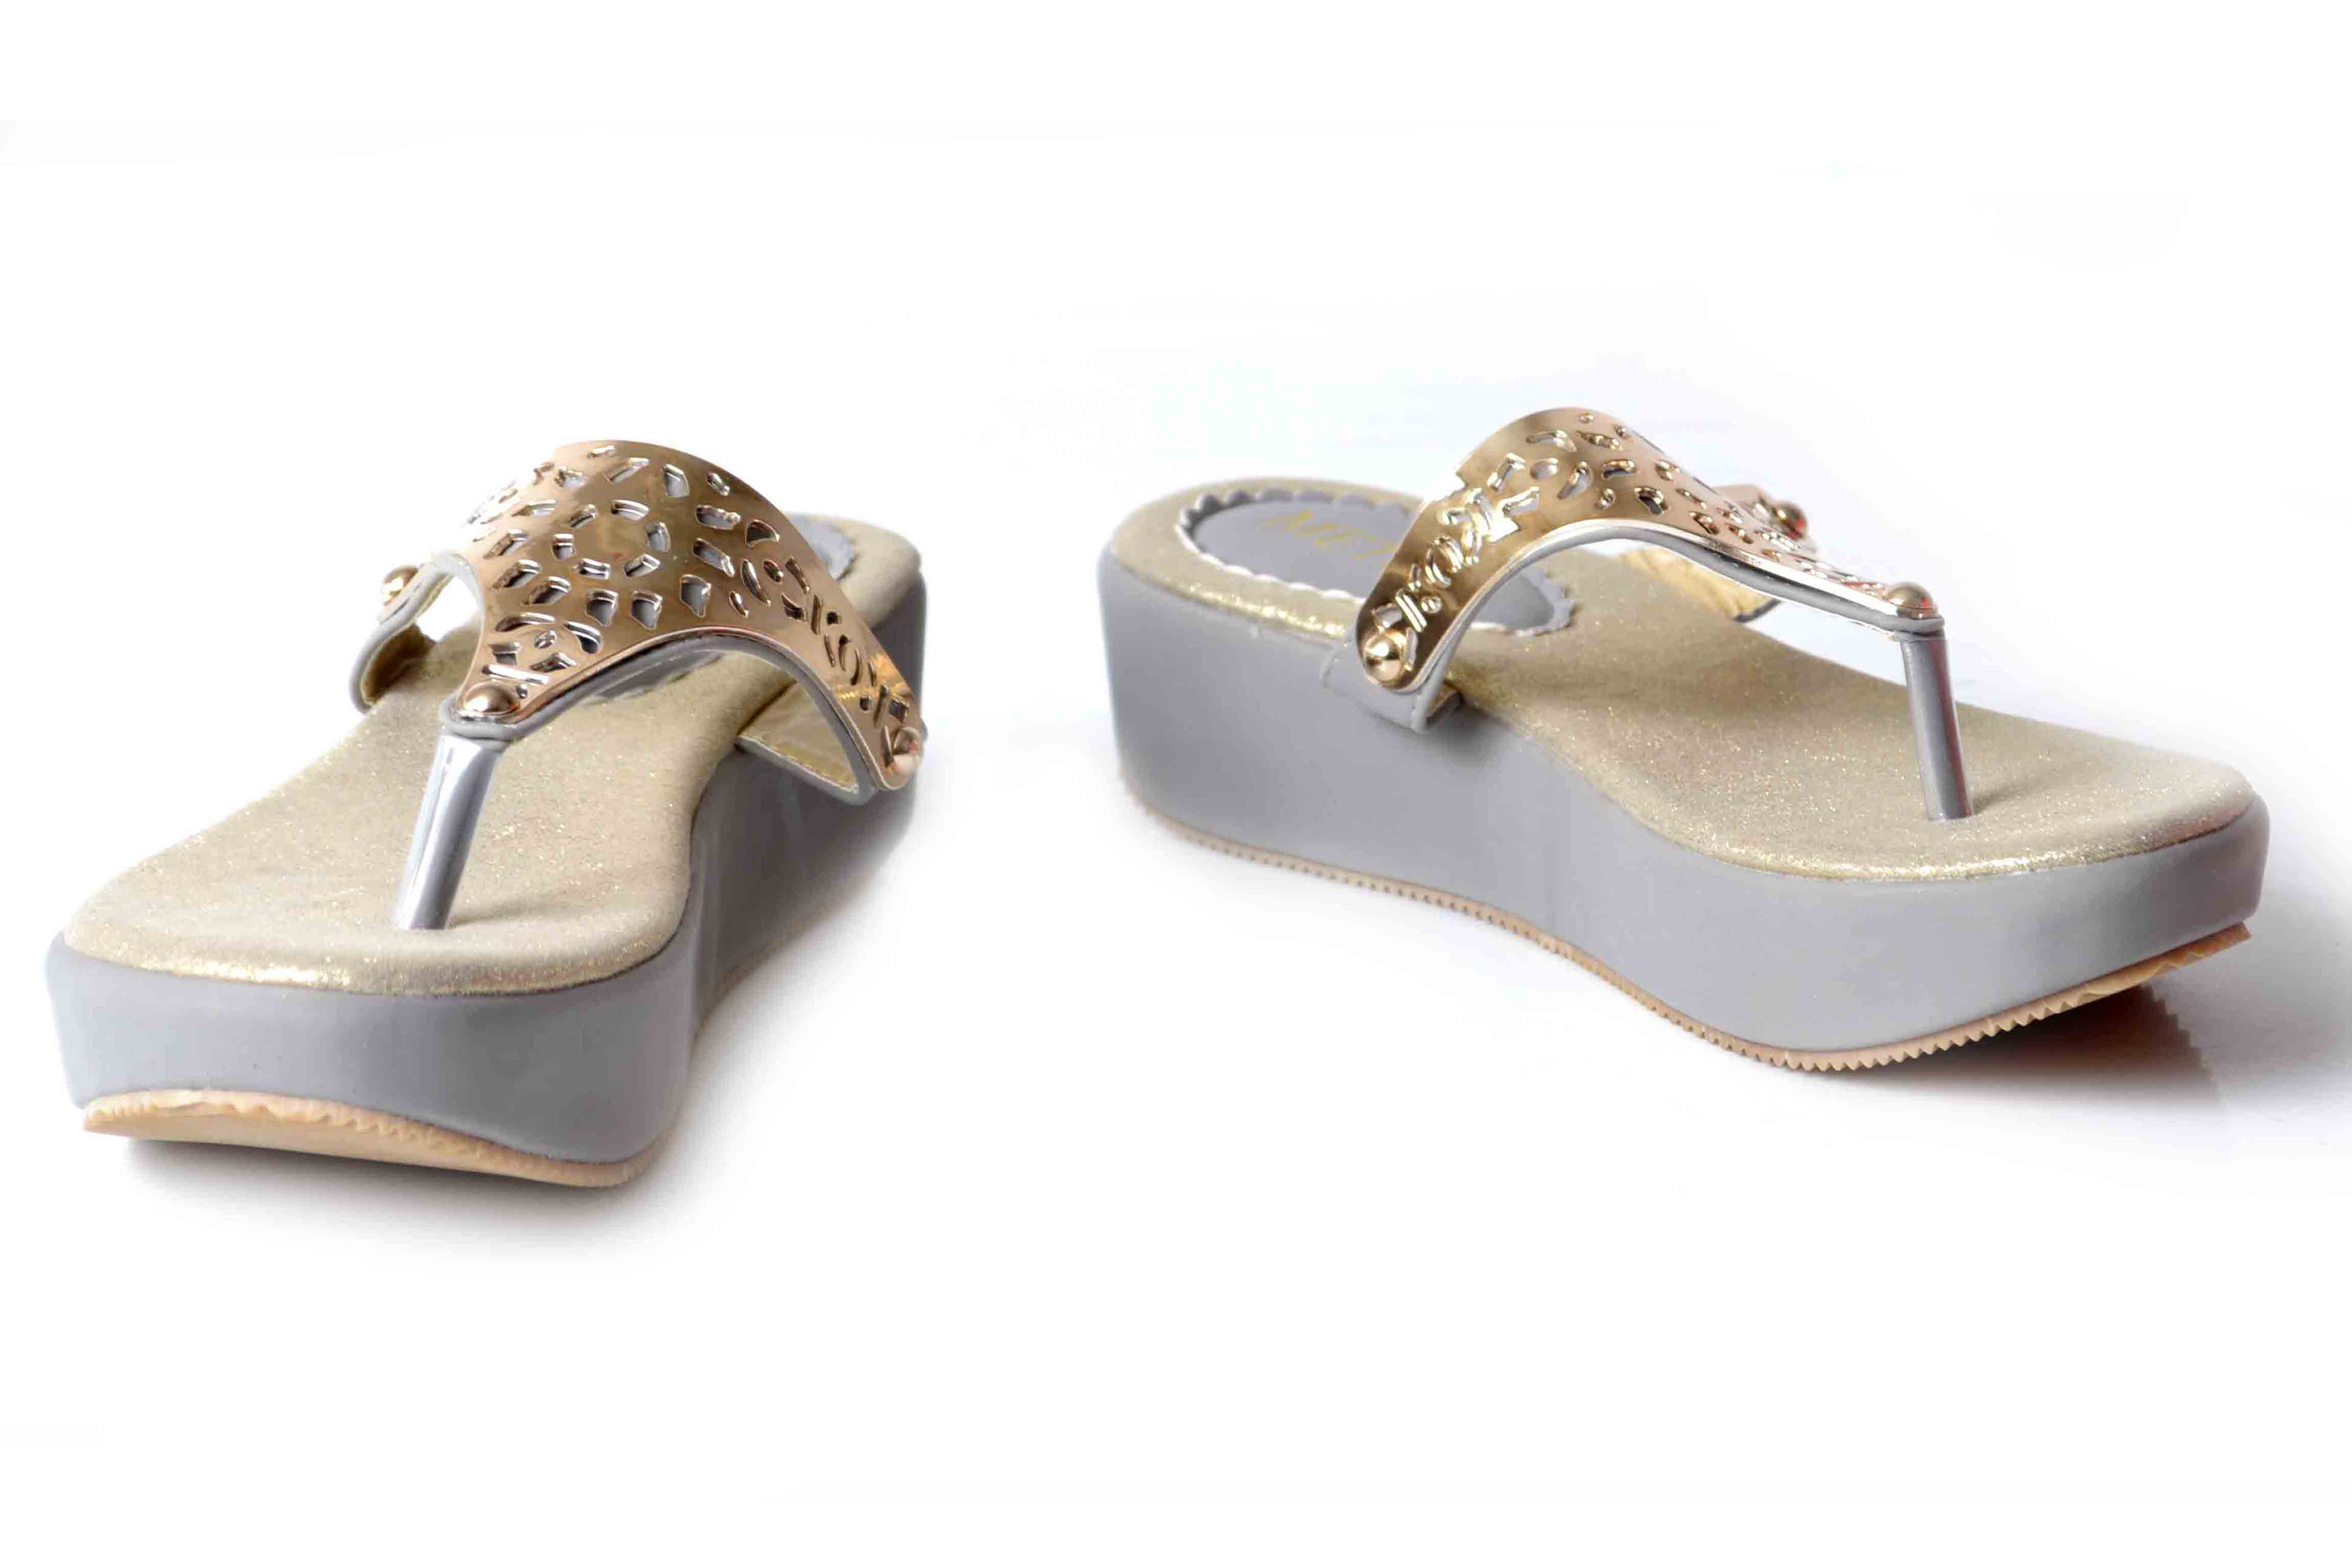 Metro-Shoes-Spring-Summer-Collection-2015-2016 (17)